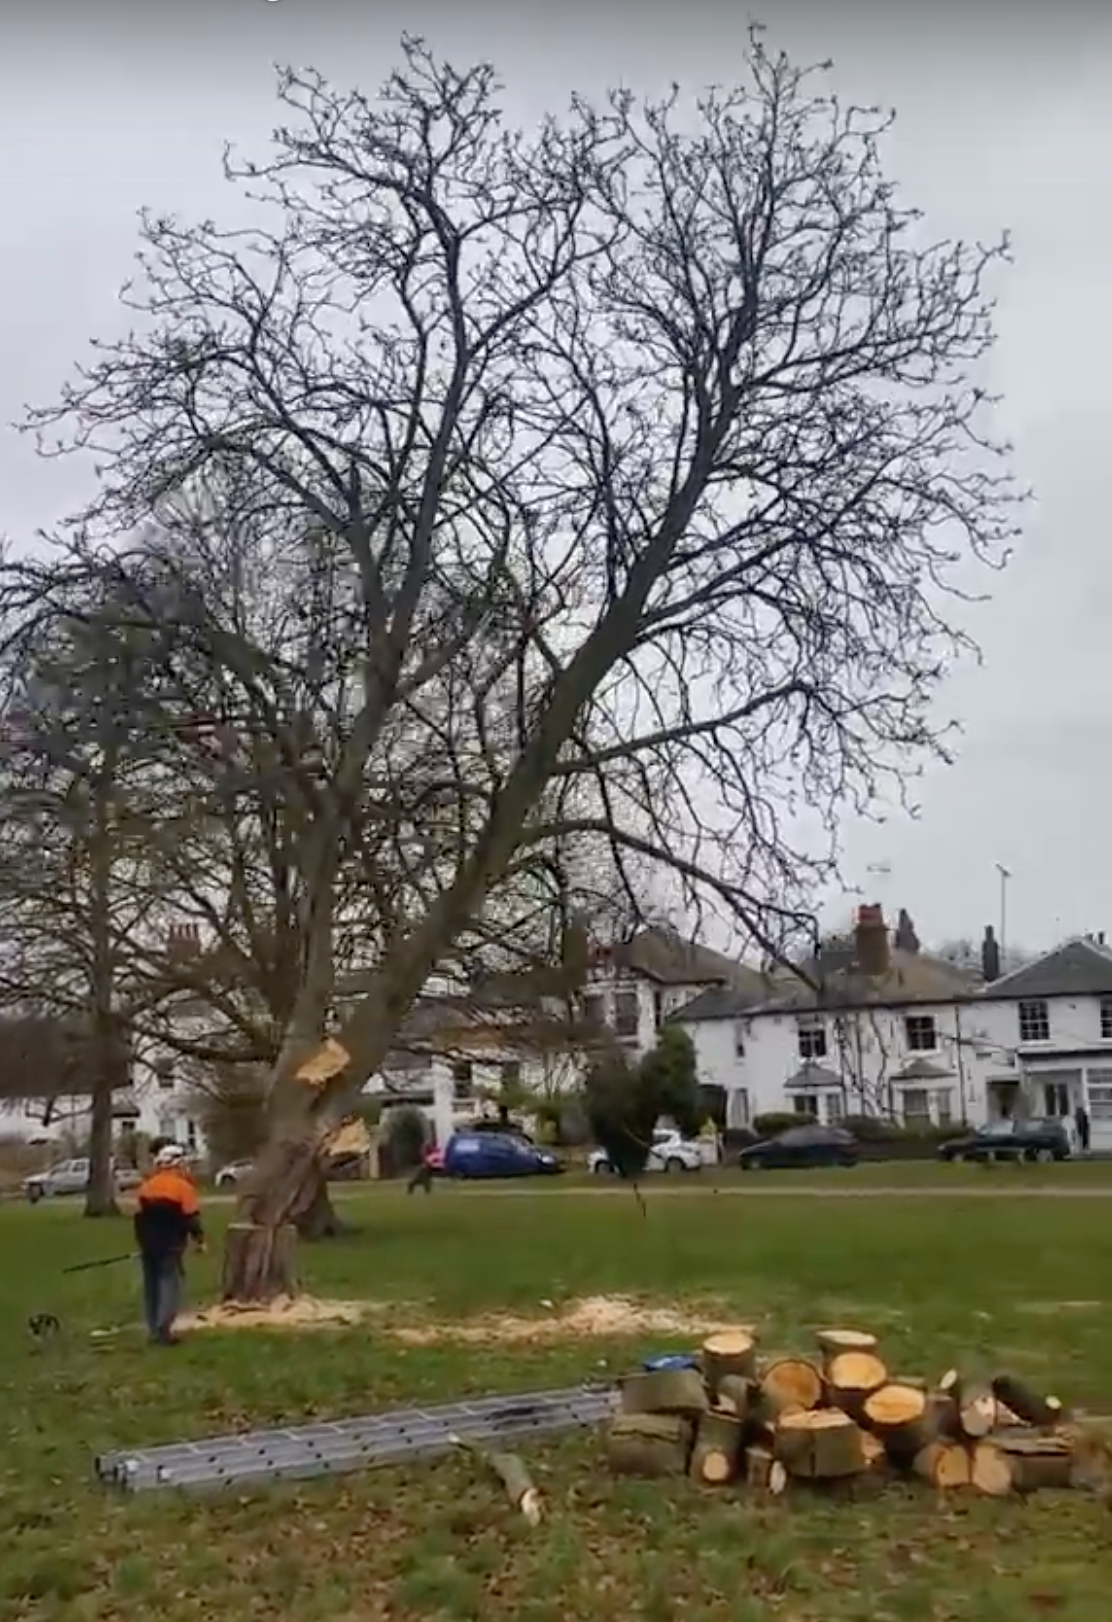 Caught on camera: pupils cheer as tree is felled